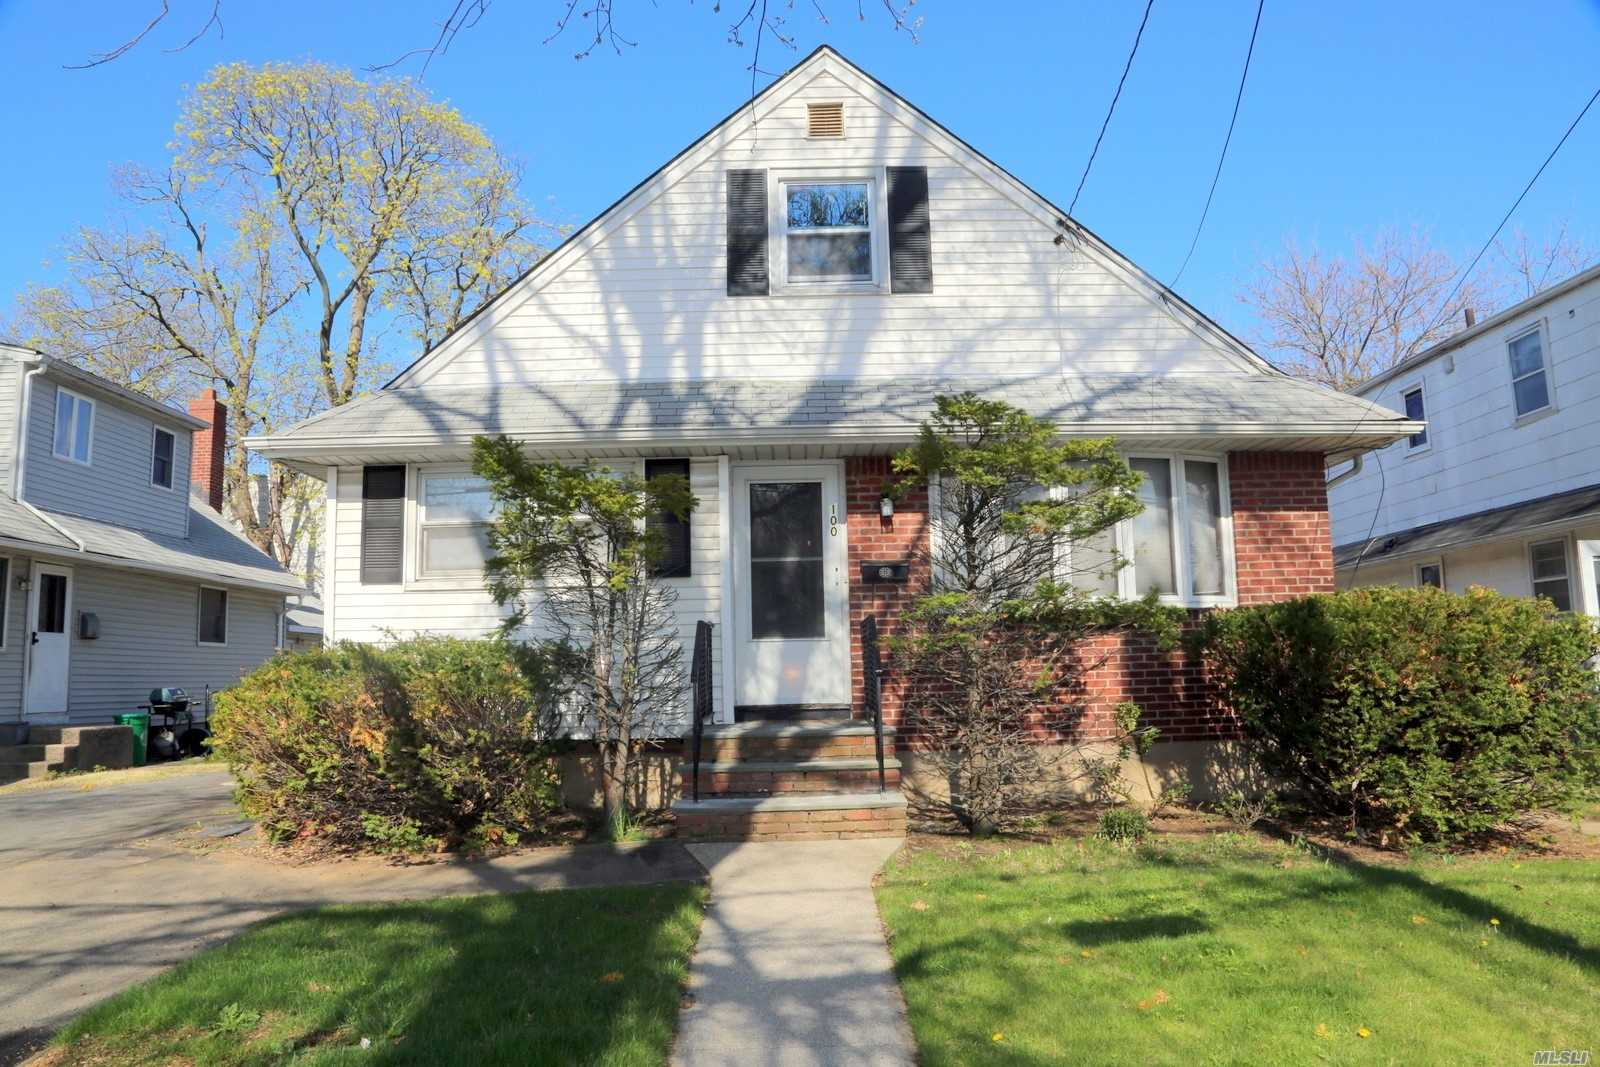 Beautifully Maintained!  Recently Upgraded 5 Bedroom, 2.5 Bathroom Home In The Highly Sought-After New Hyde Park School District! Oversized Lot With Large Yard, Just 2 Blocks To Lirr Station For Easy, Convenient Commute To Manhattan/Nyc/Jfk Airport. Easy Access To All Main Highways Too! Large Driveway Parks 4 Cars Easily, With On-Street Parking Also Available.Three Bedrms And 2 Full Baths On Main Floor (The Back Bdr Has Full Bathroom And Side Entrance, Easily Upgradable To An In-Law Suite).